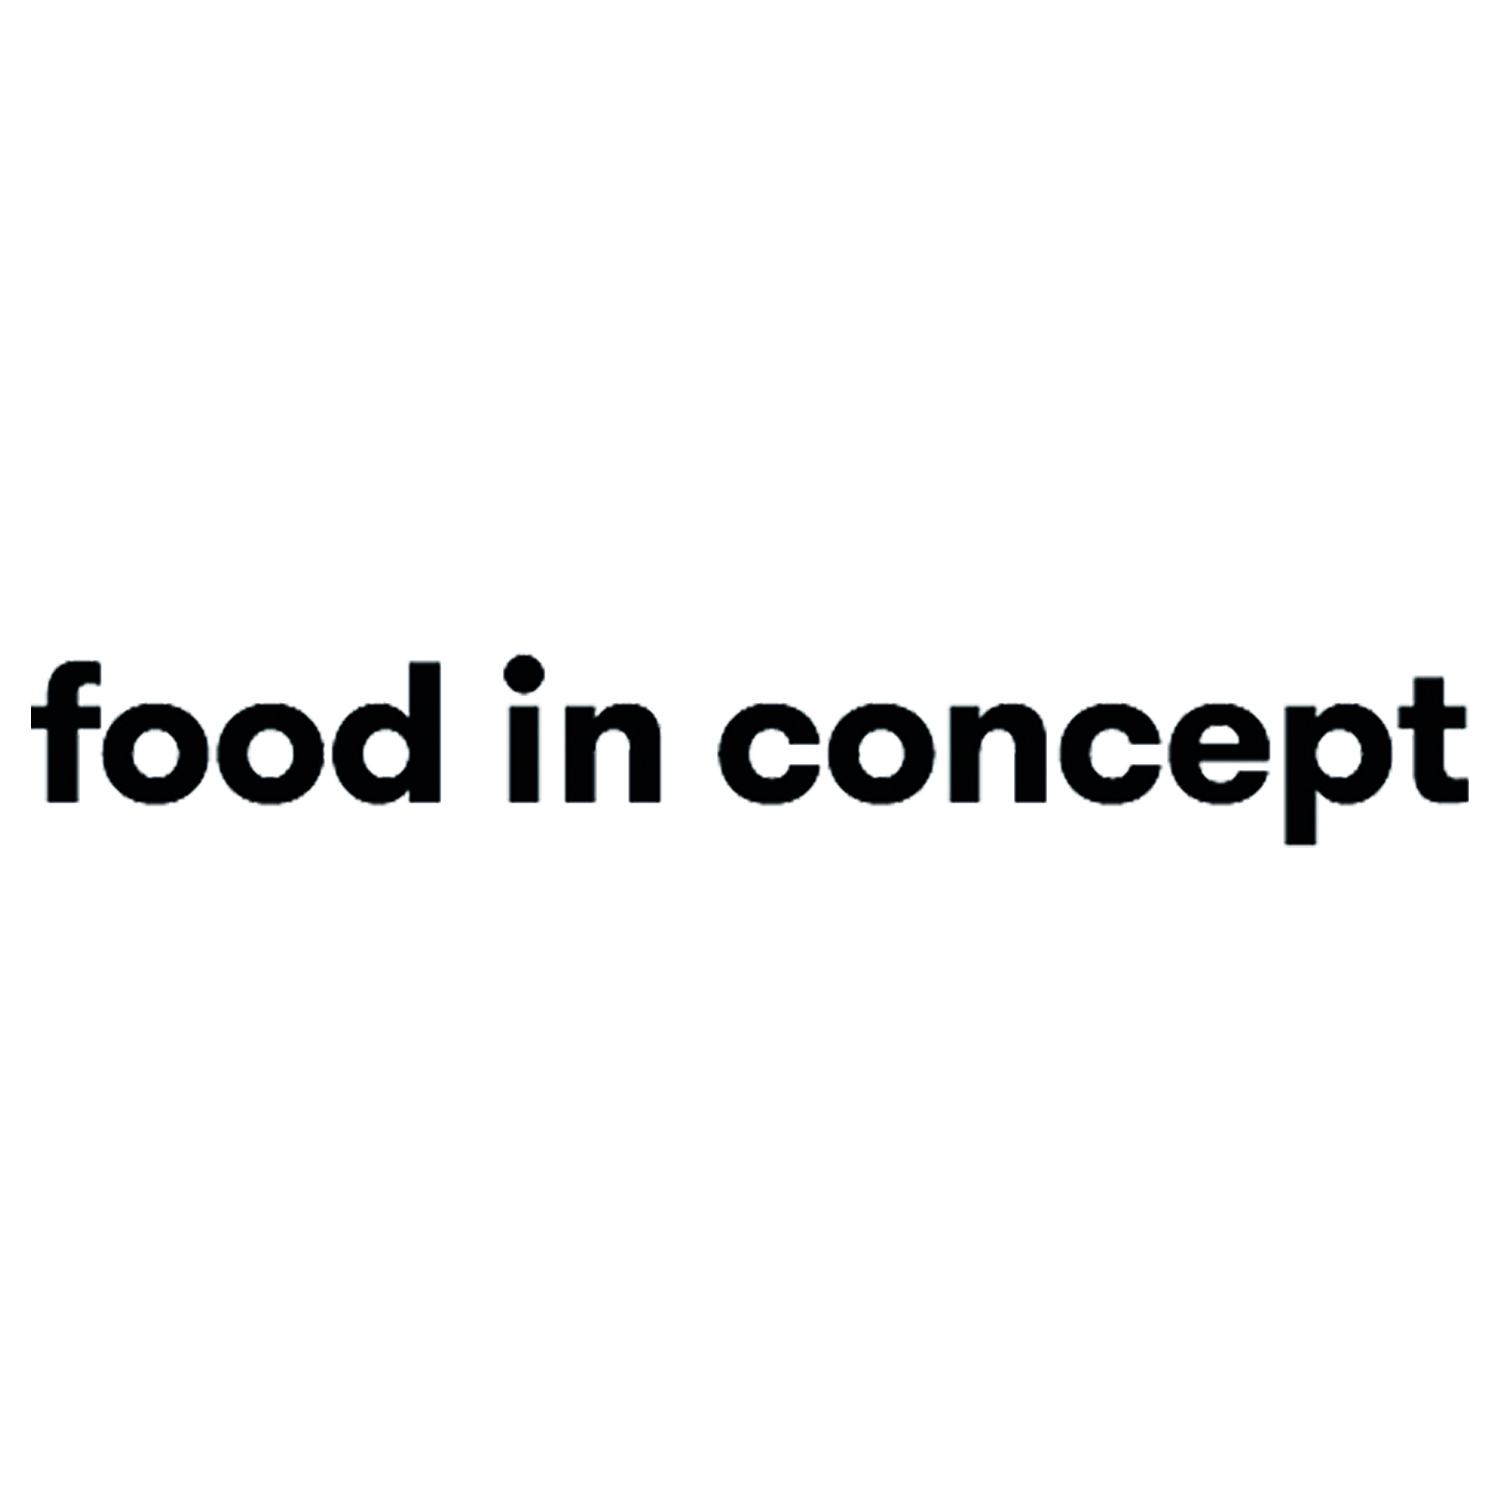 Food in Concept